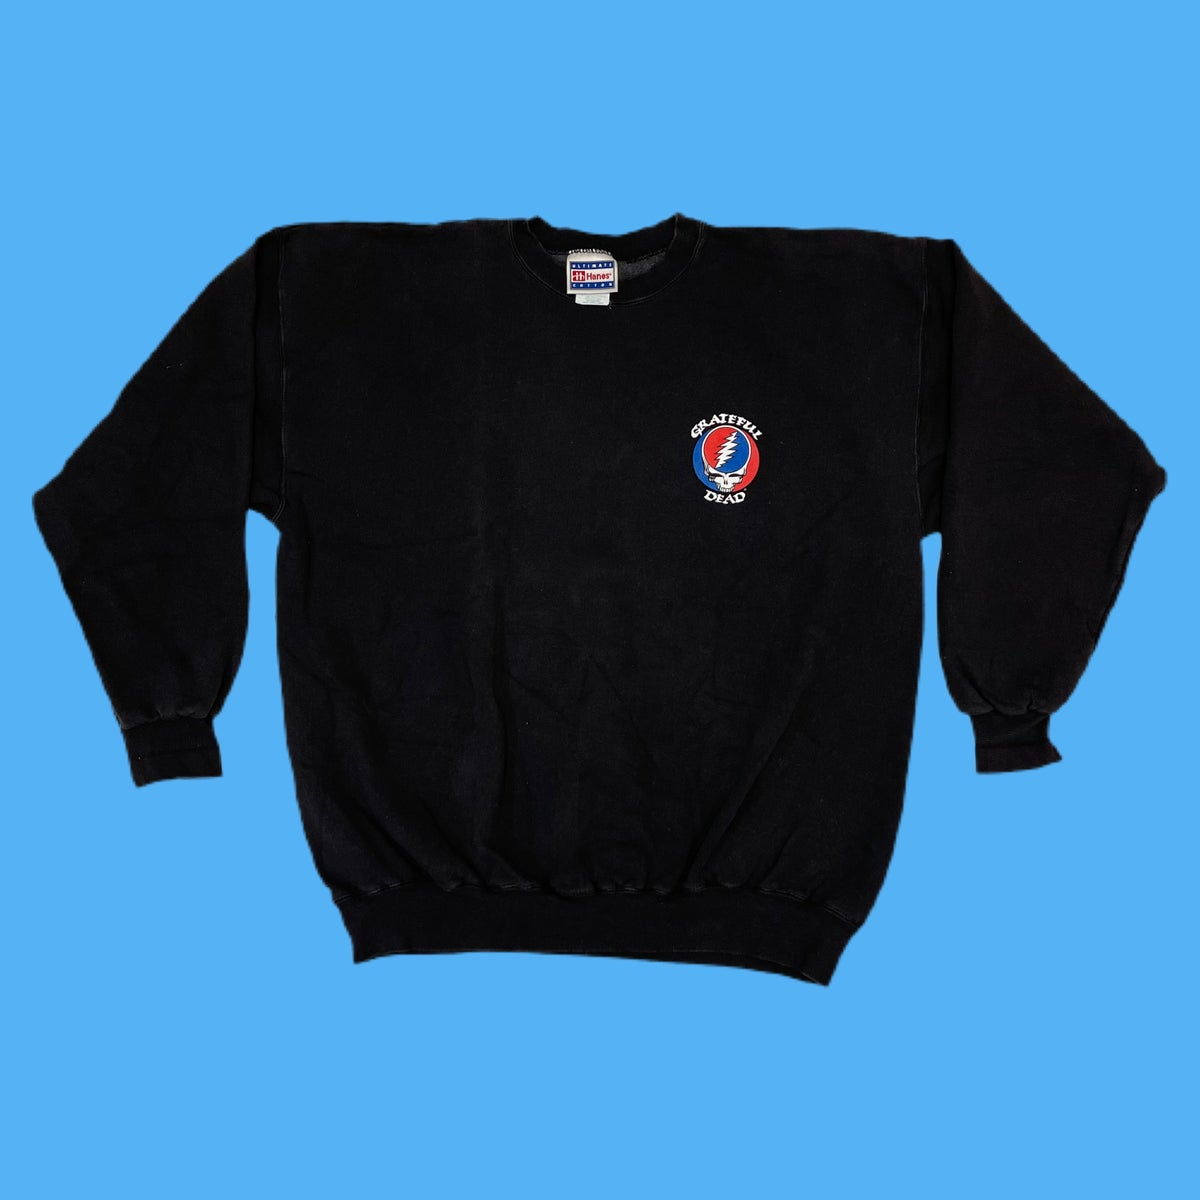 Original Vintage Grateful Dead Road Crew 1990's Long Sleeve Crewneck Sweatshirt! X-LARGE!